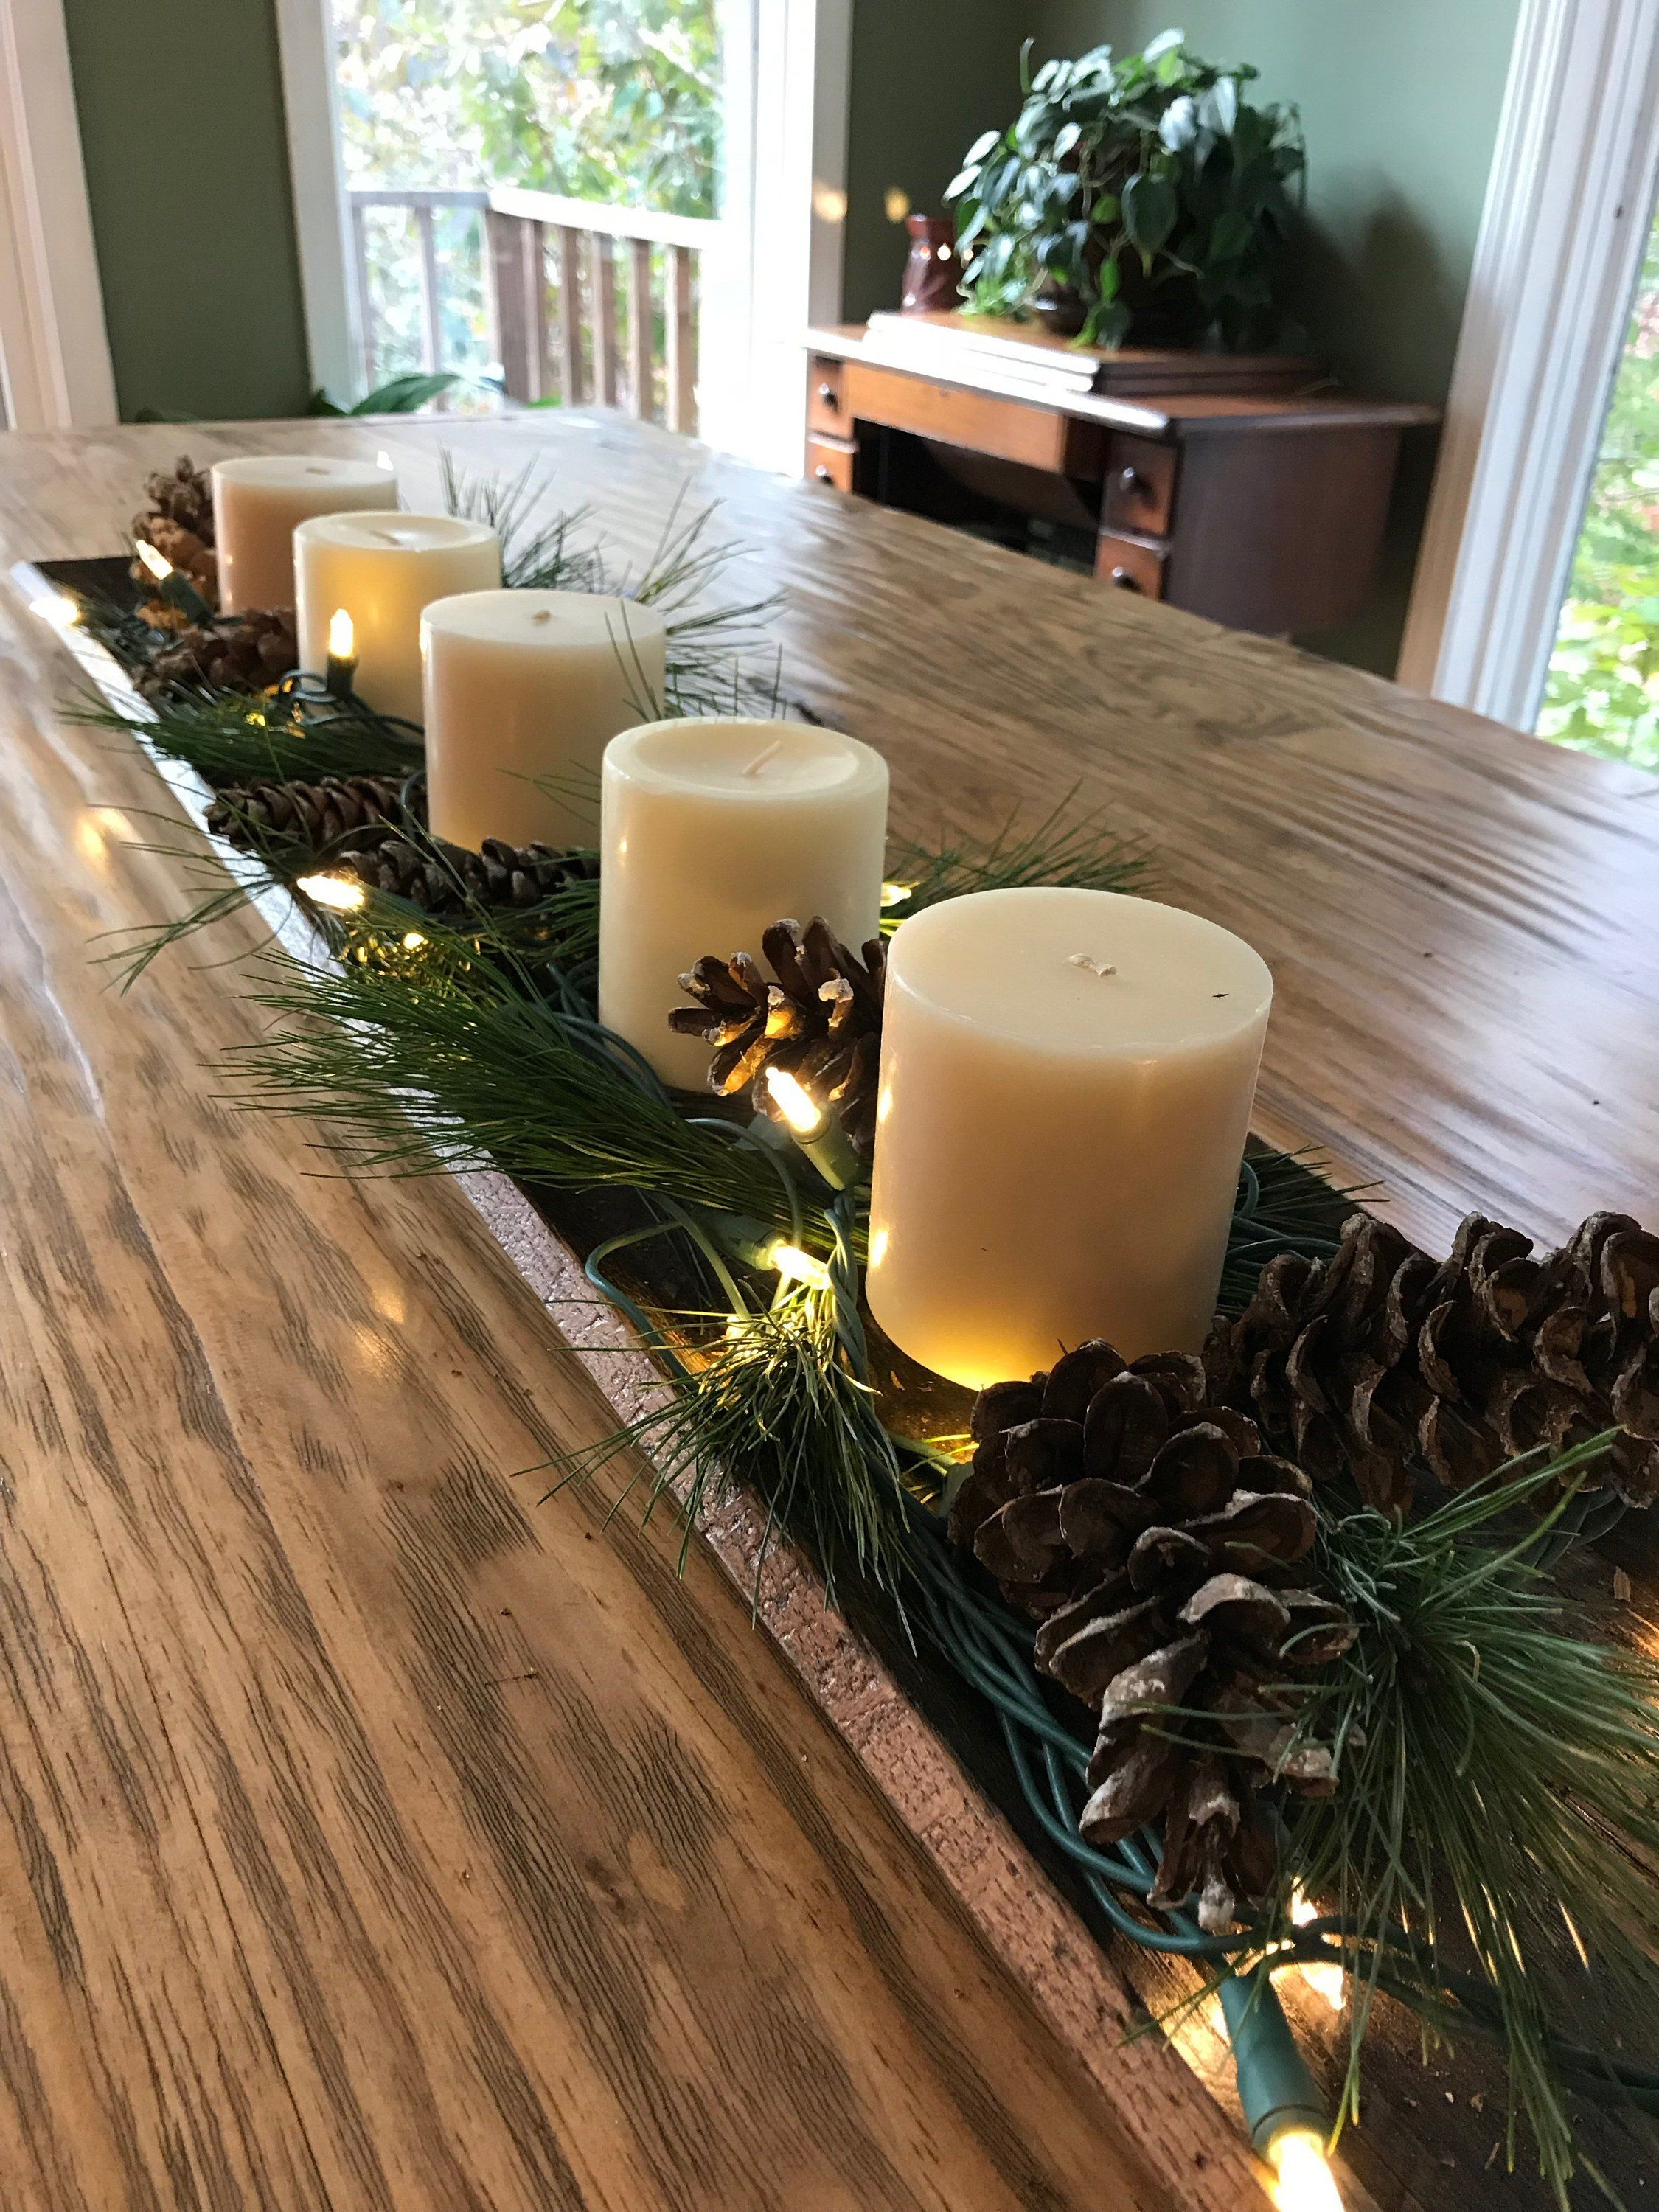 Centerpiece Tray Rustic Centerpiece Tray Holiday Centerpiece Tray Rustic Wood Tray Rustic Decor Wood Tray Dining Table Centerpiece Holiday Dining Table Christmas Dining Table Christmas Table Centerpieces